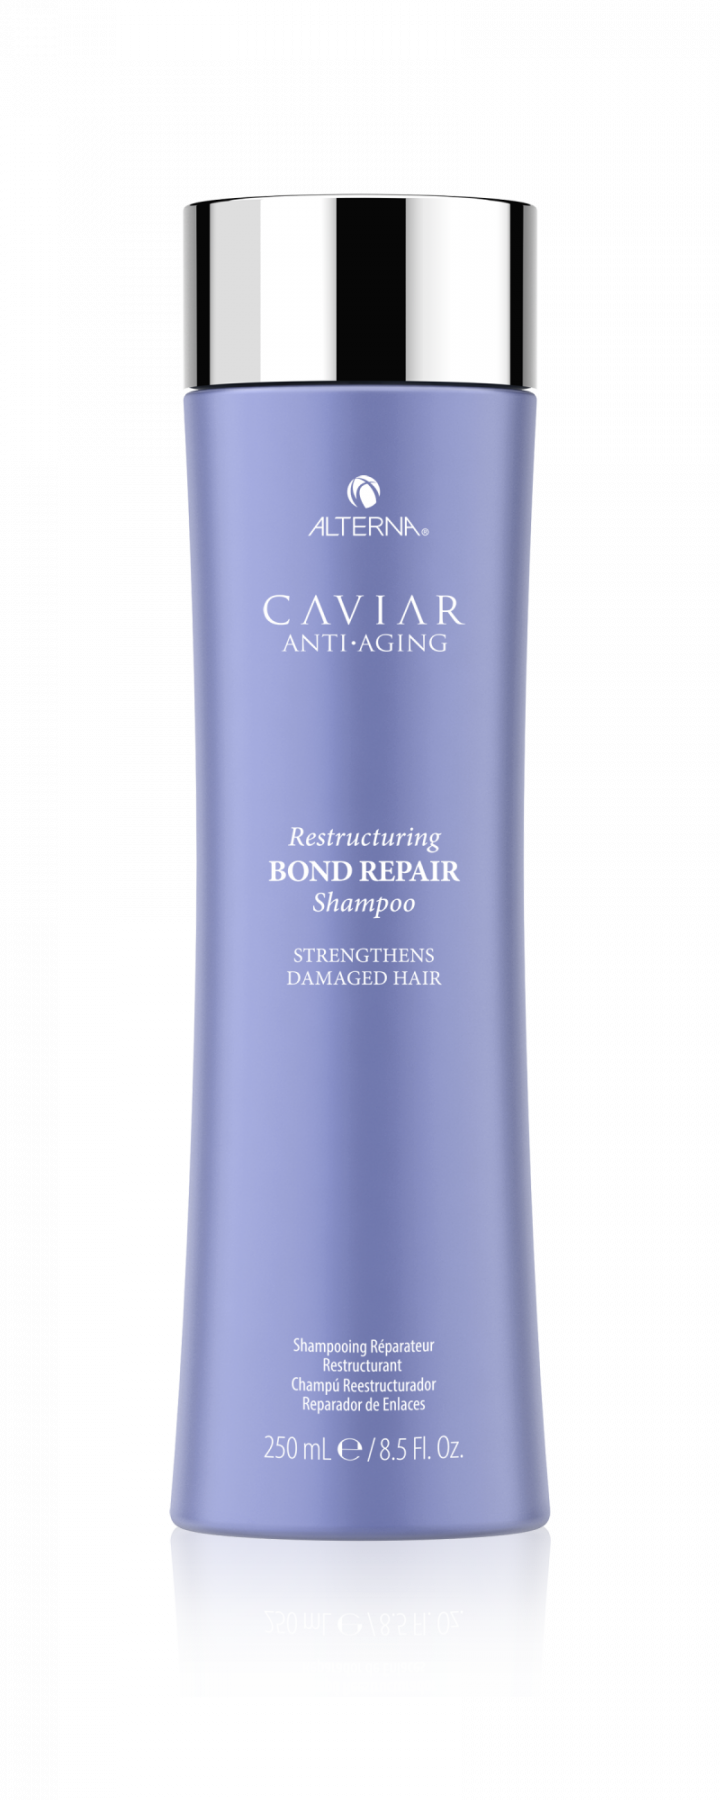 Caviar Anti-Aging RESTRUCTURING BOND REPAIR Shampoo